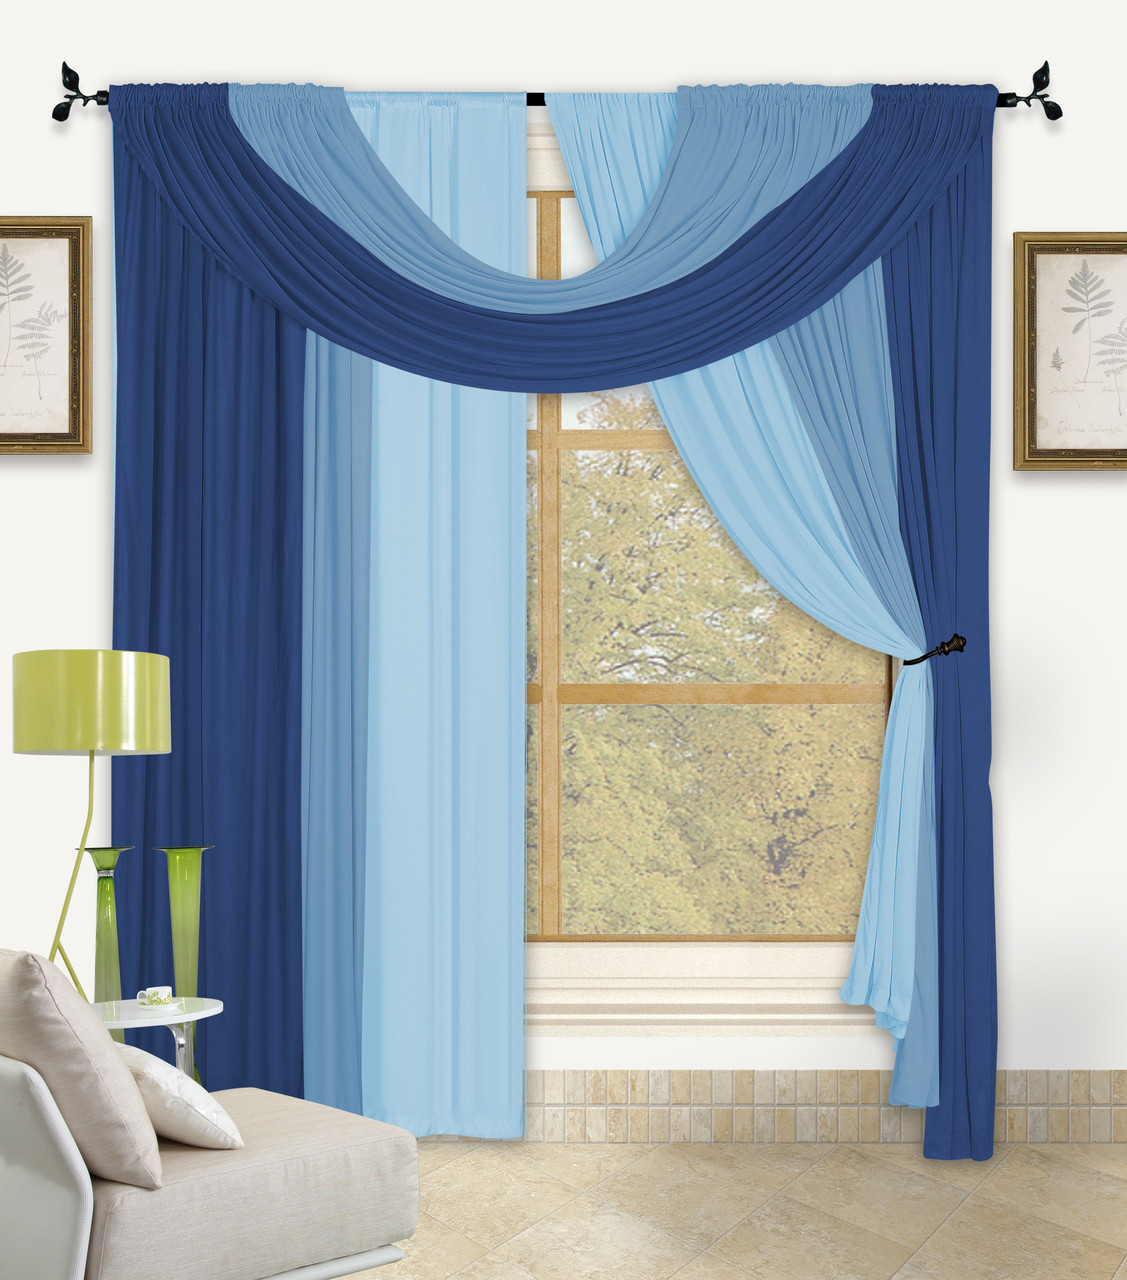 Keeping Heating Costs Down with Curtains - Linen Store